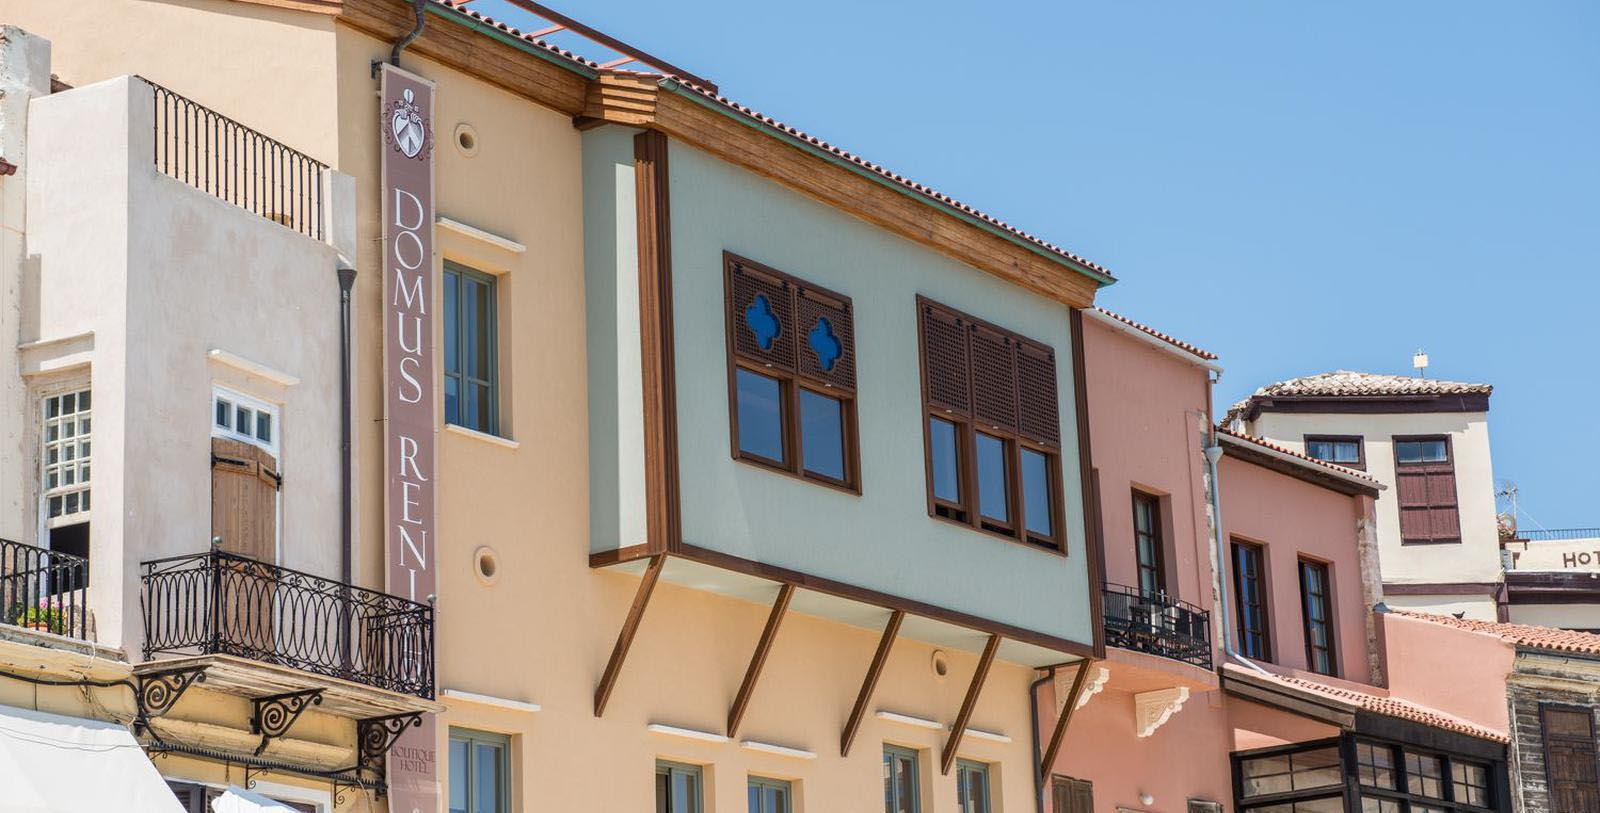 Image of hotel exterior Domus Renier Boutique Hotel, 1608, Member of Historic Hotels Worldwide, in Chania, Greece, Special Offers, Discounted Rates, Families, Romantic Escape, Honeymoons, Anniversaries, Reunions